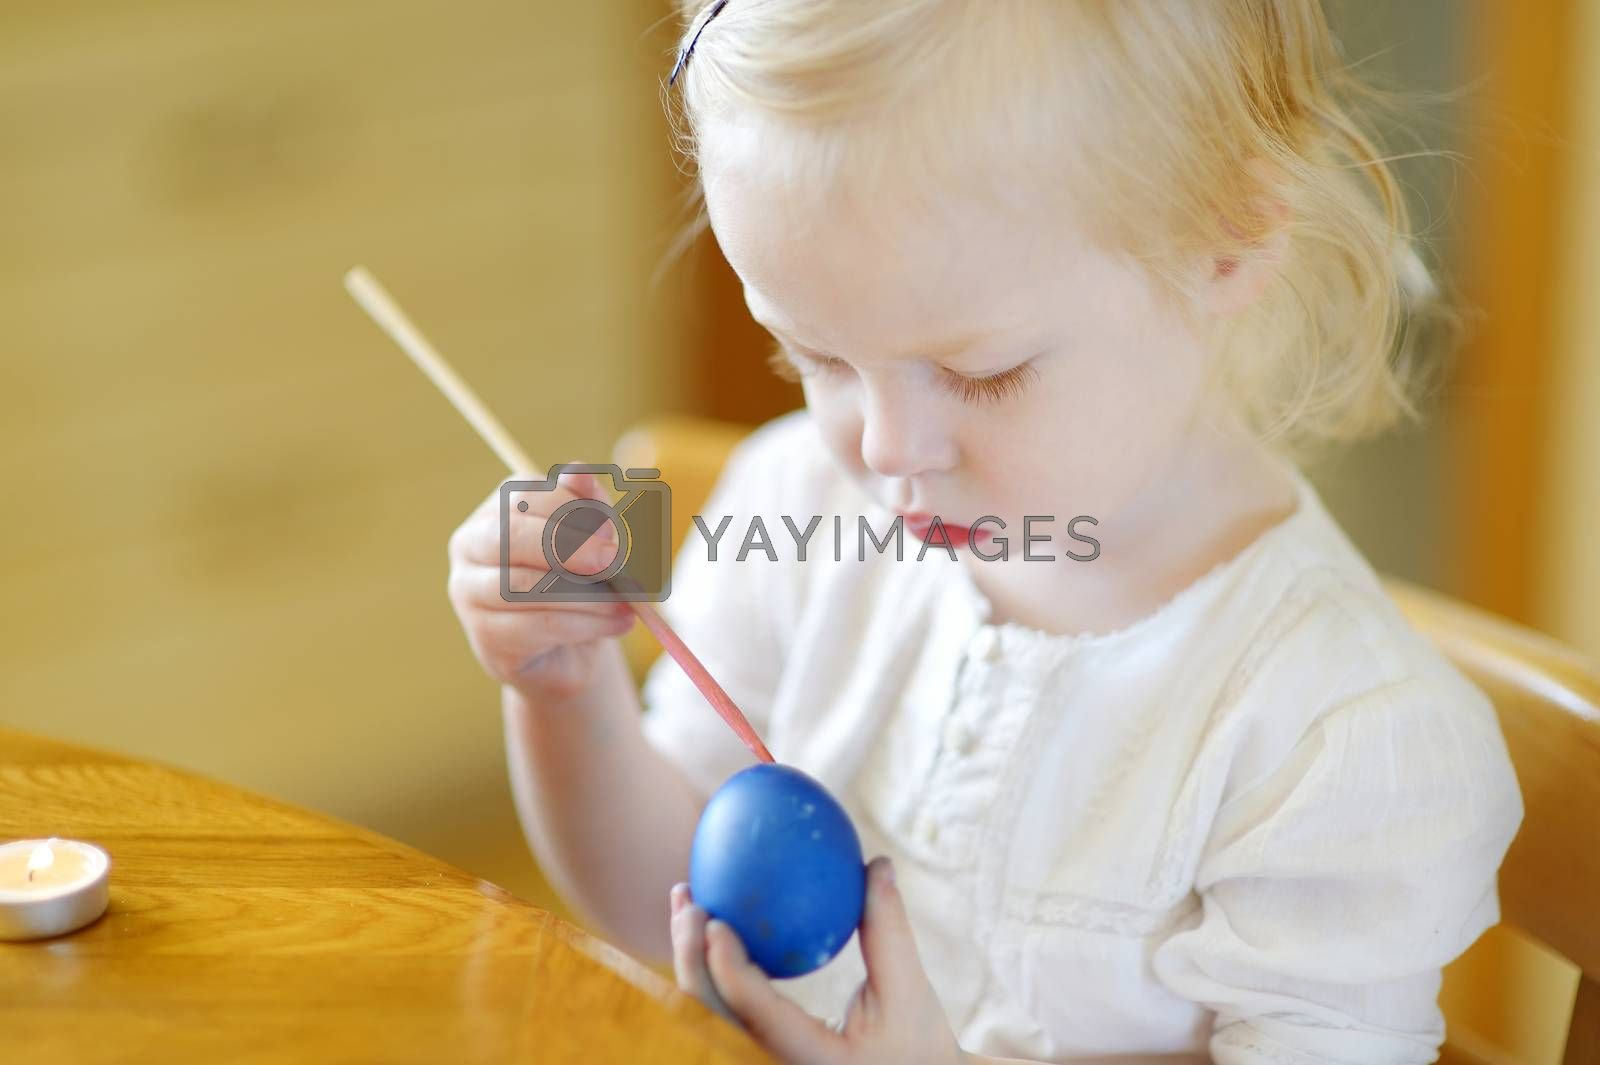 Adorable little girl coloring an Easter egg using wax and dyes